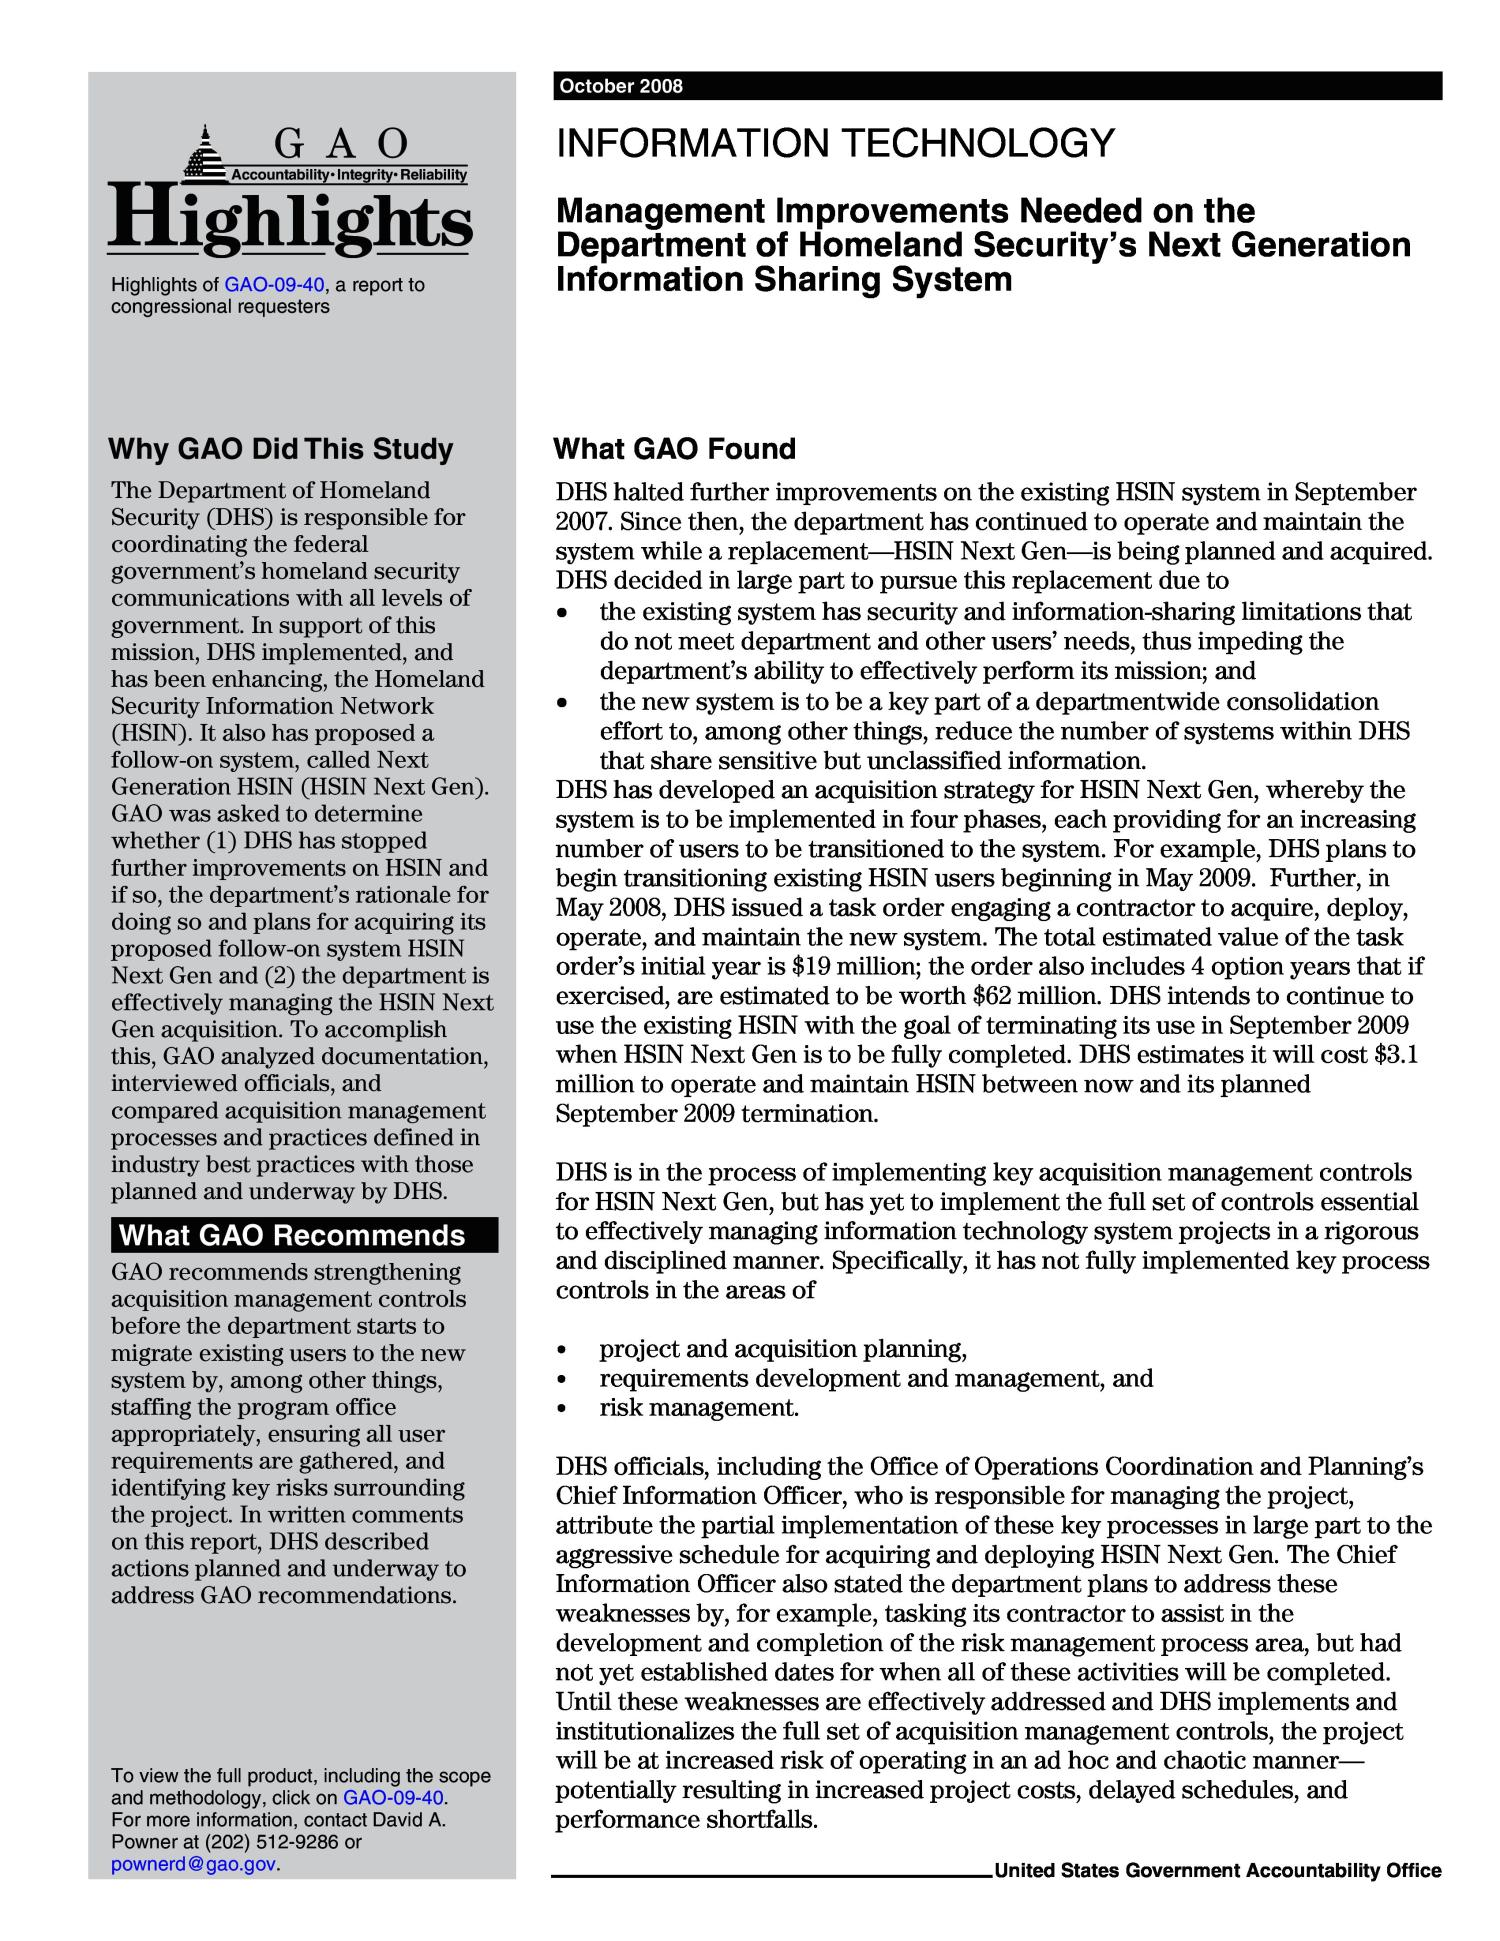 Information Technology: Management Improvements Needed on the Department of Homeland Security's Next Generation Information Sharing System                                                                                                      [Sequence #]: 2 of 58